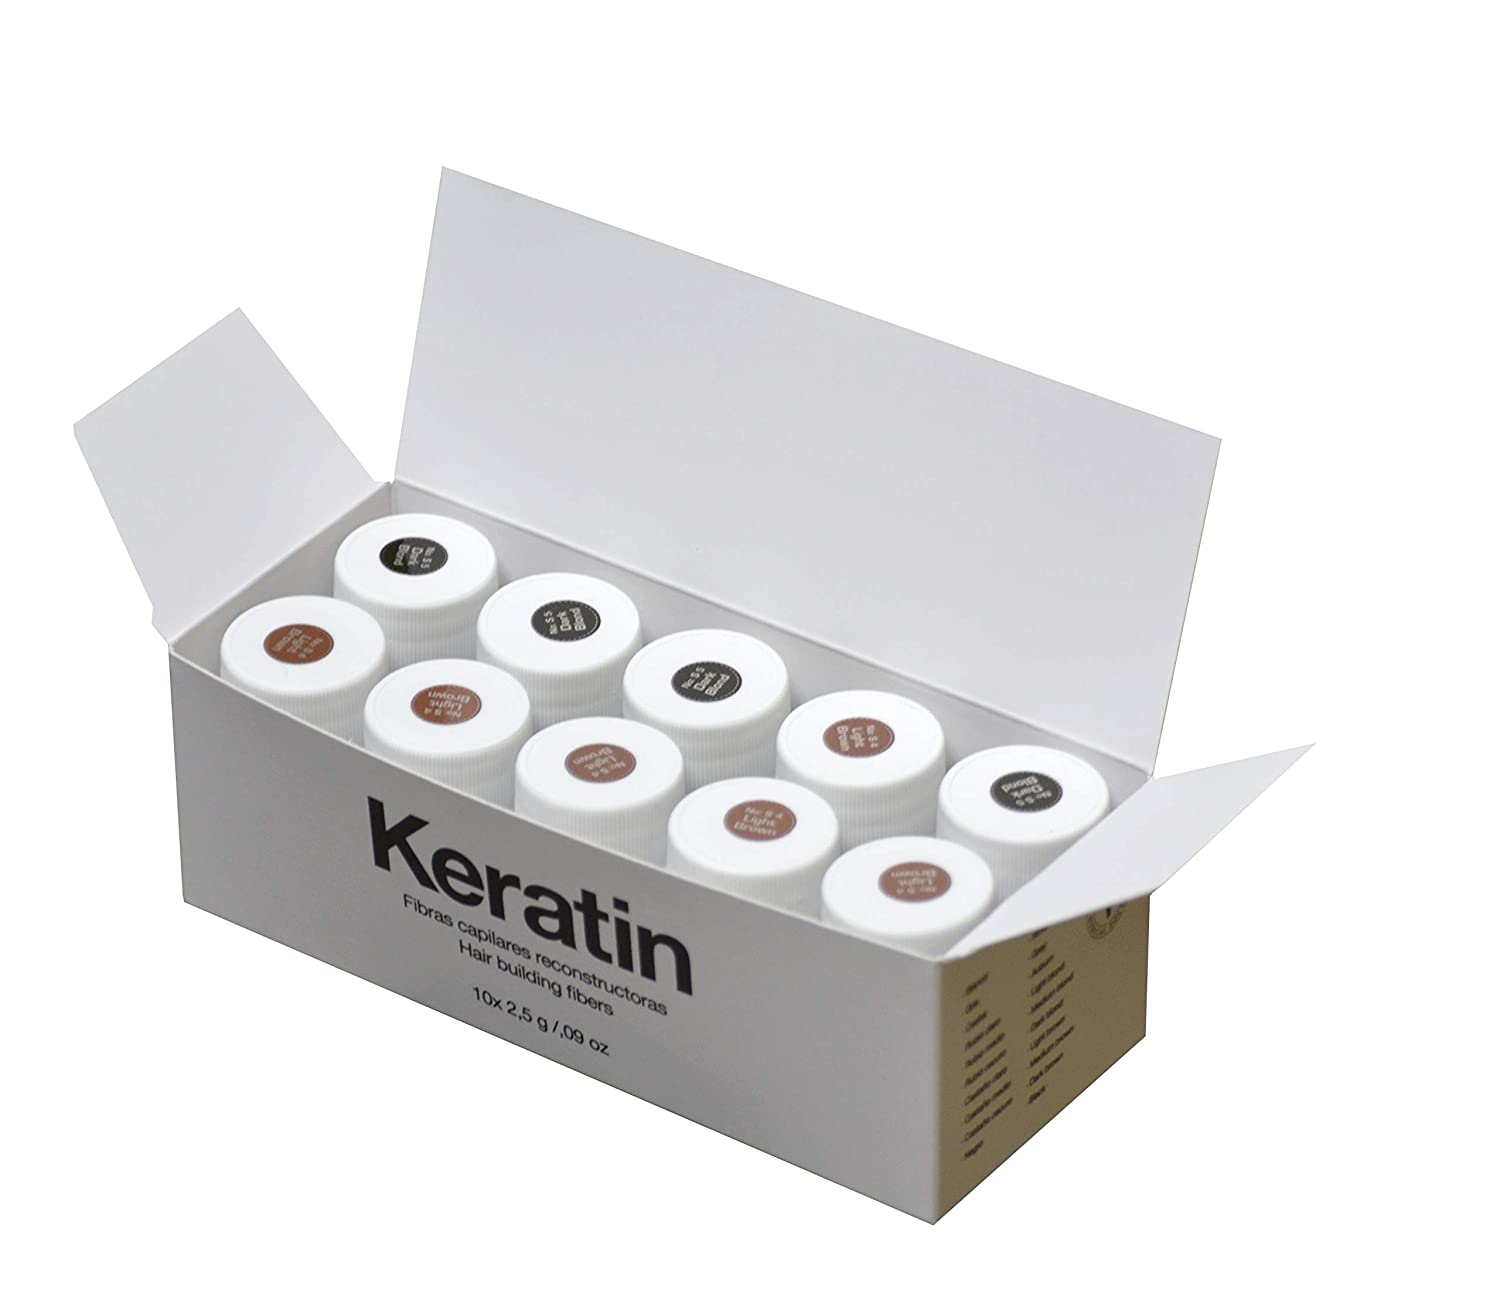 Amazon.com : The Cosmetic Republic Keratin Fibres - Pack of ...